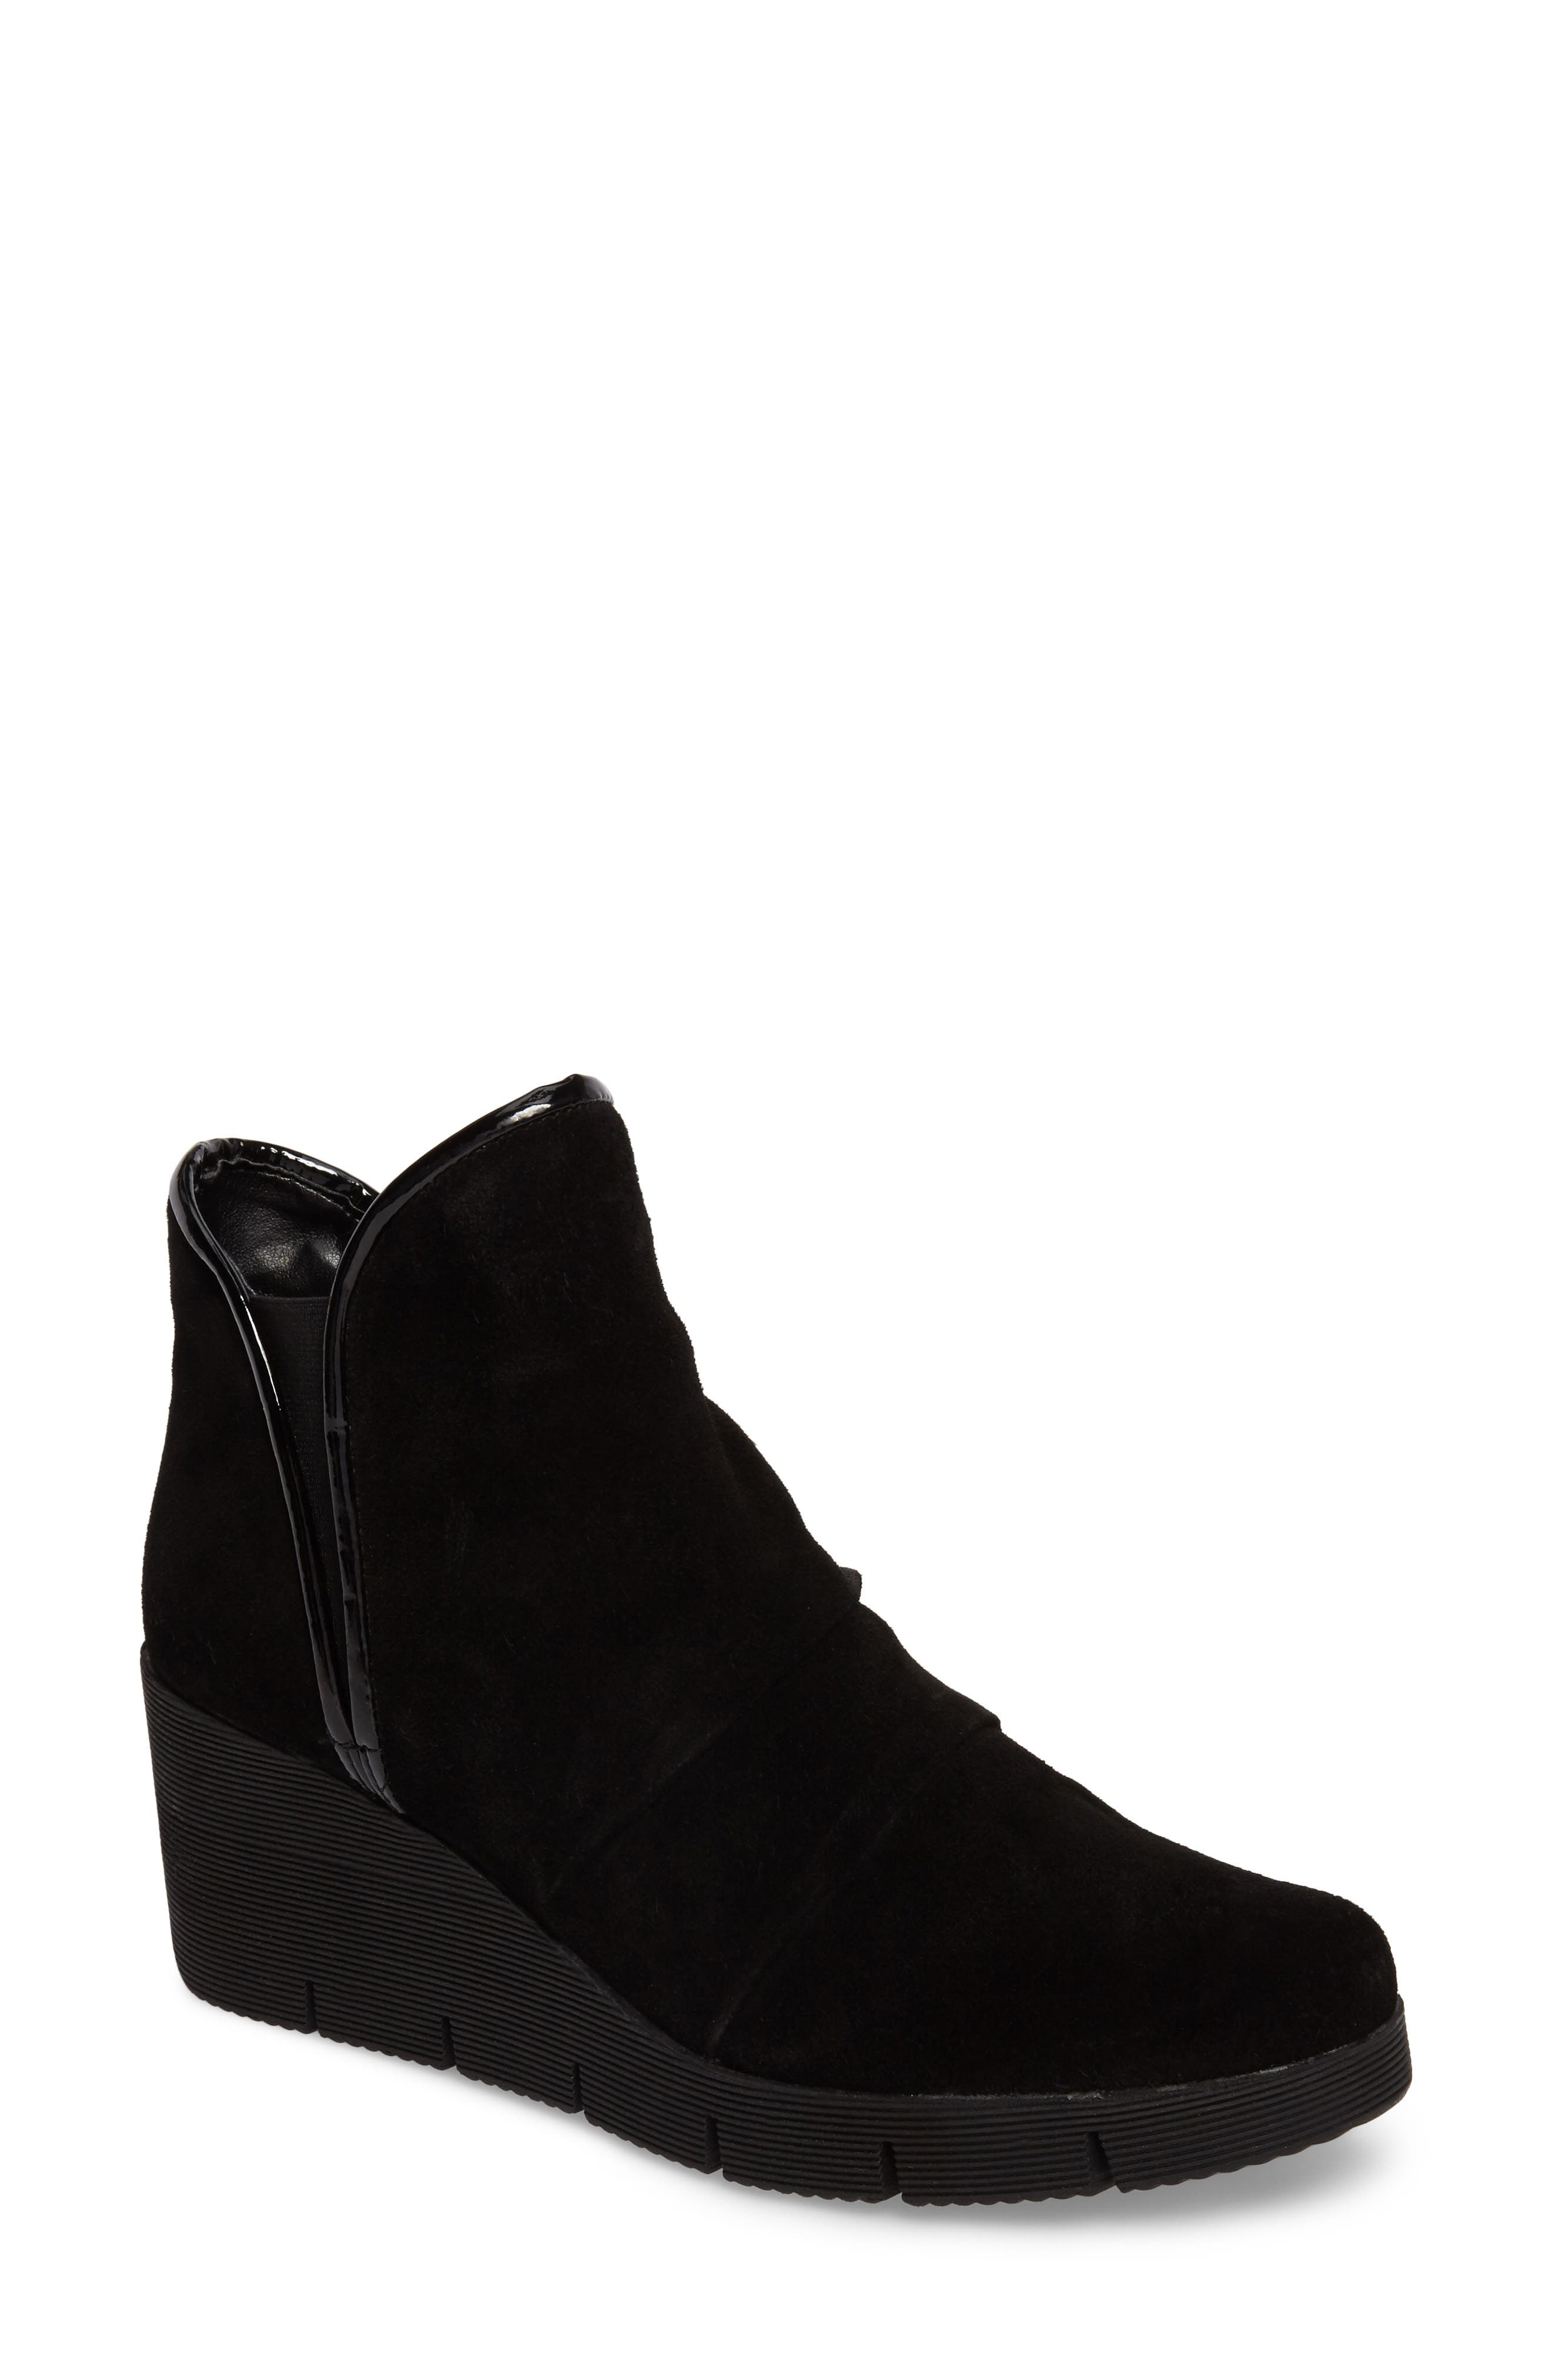 'Spaceless' Chelsea Wedge Boot,                         Main,                         color, 003